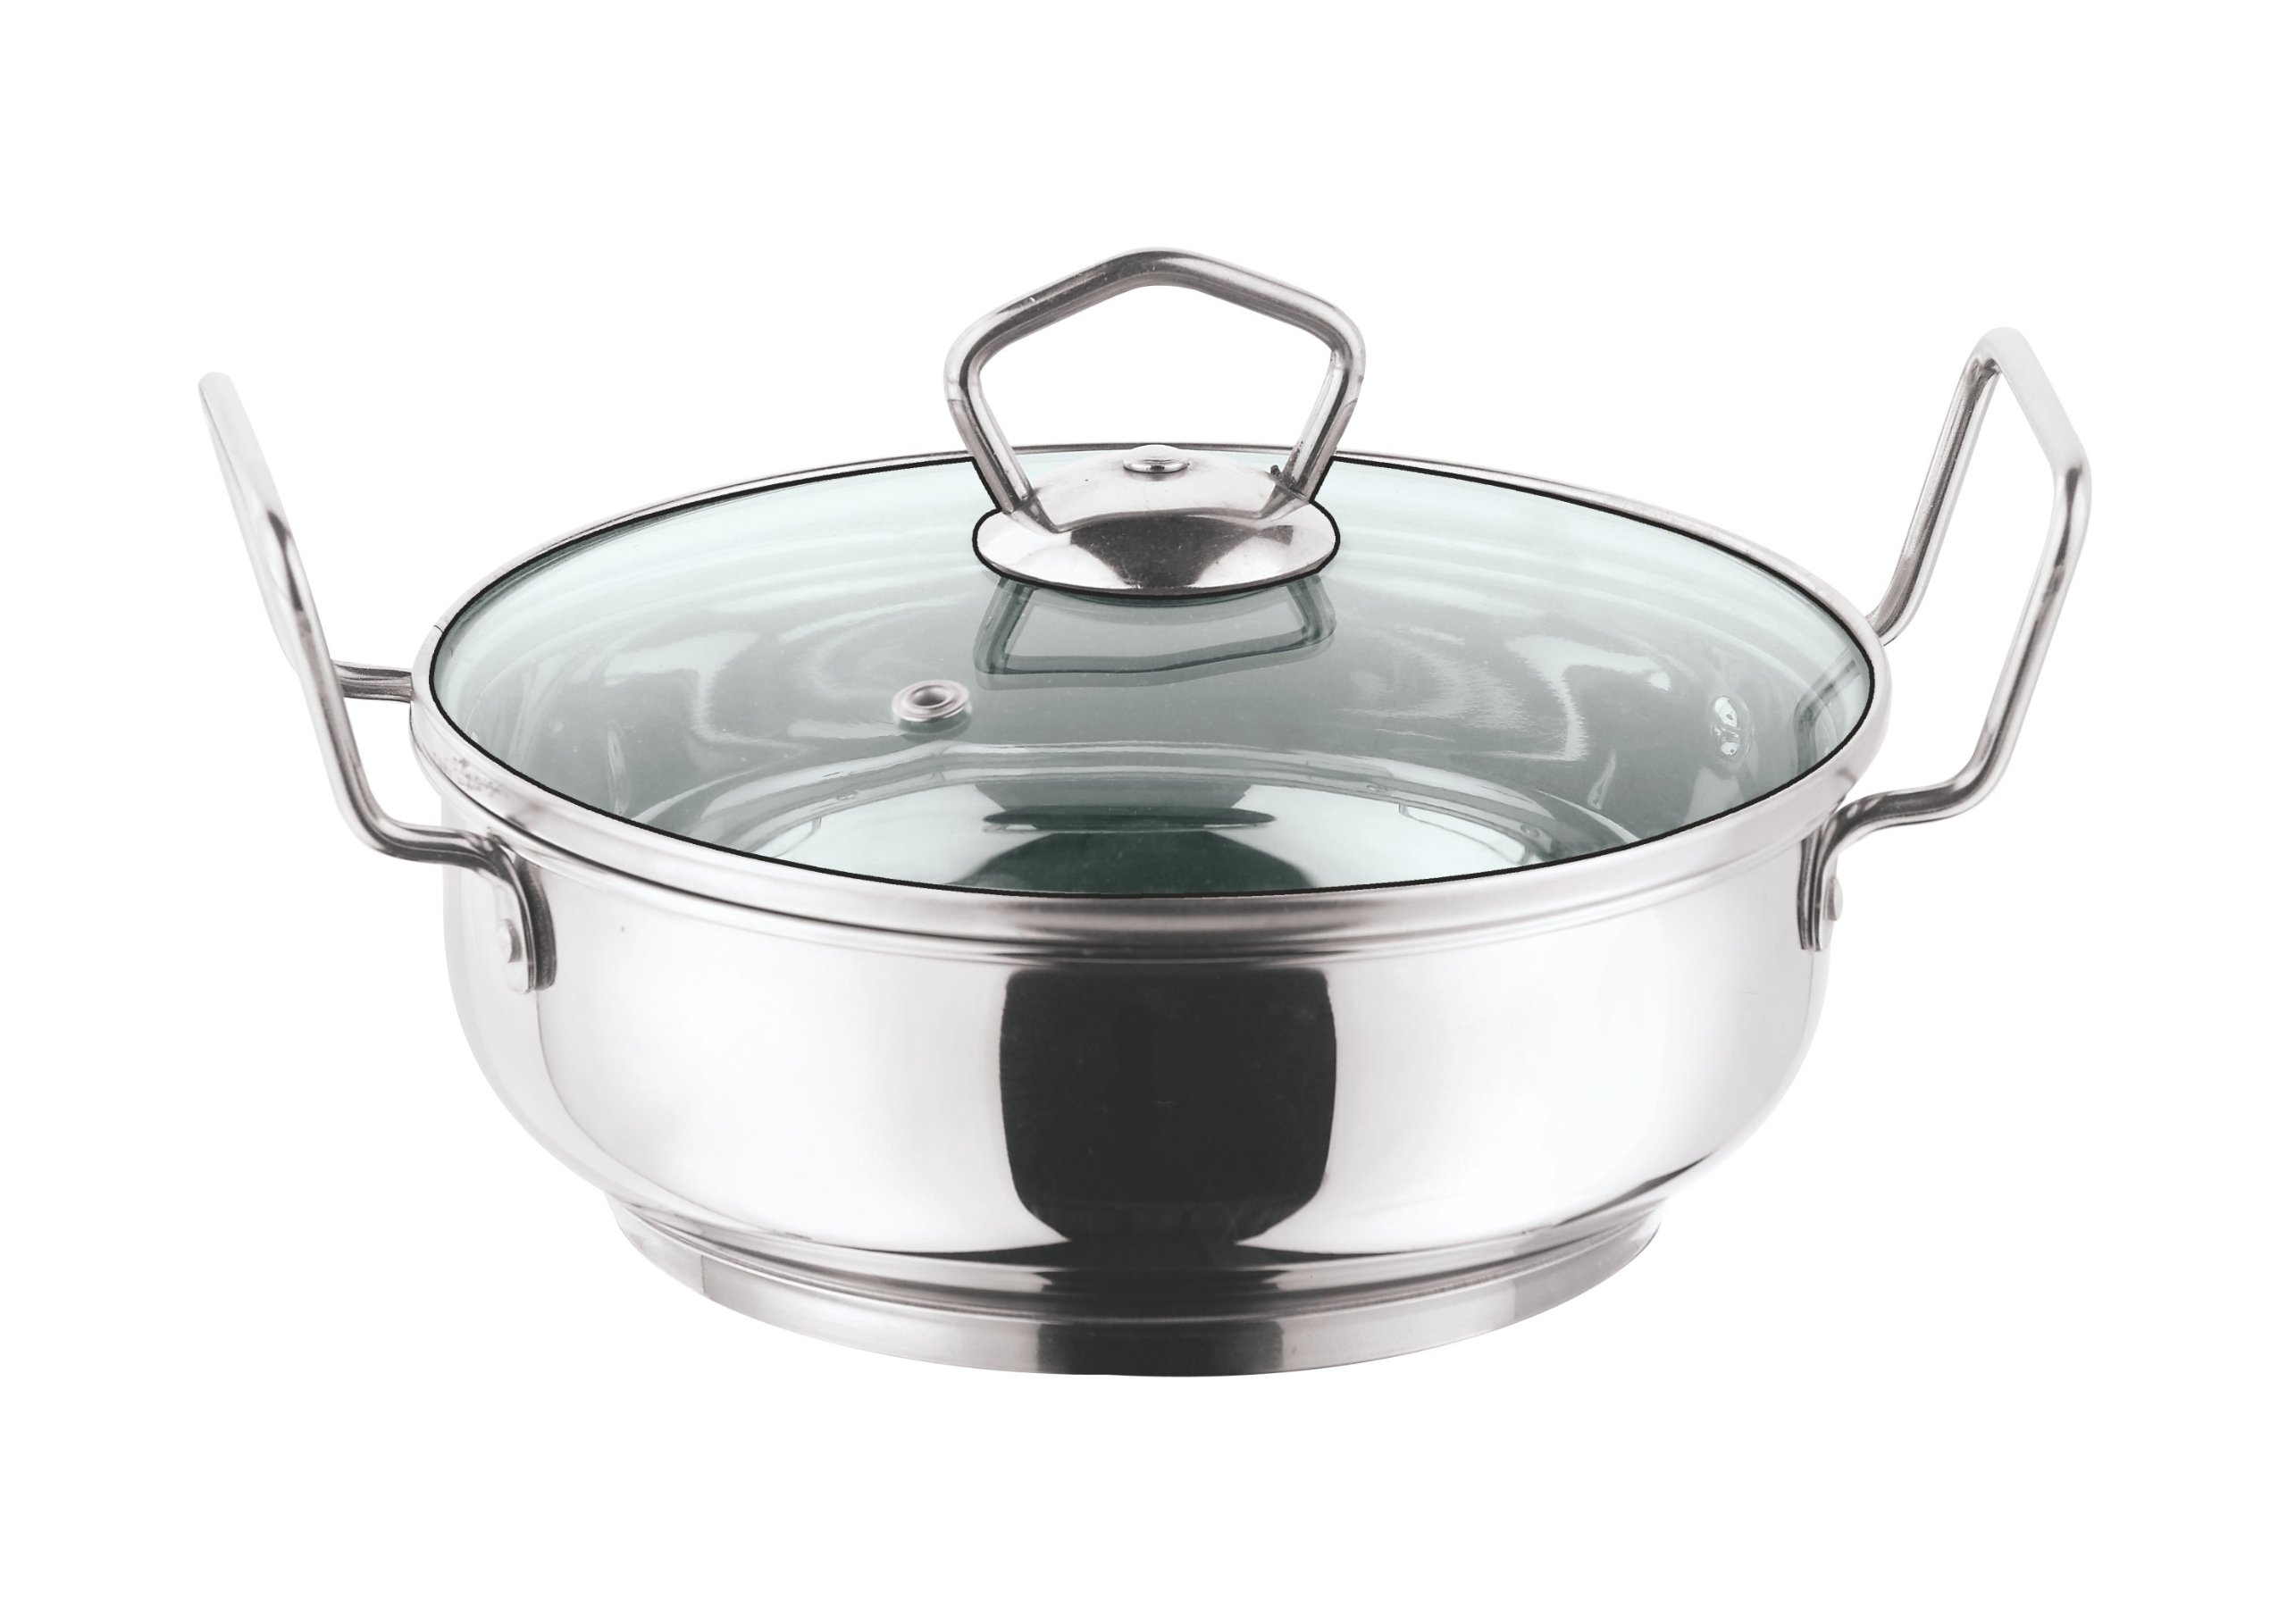 Vinod Stainless Steel Kadai with Lid 4.5 Liters